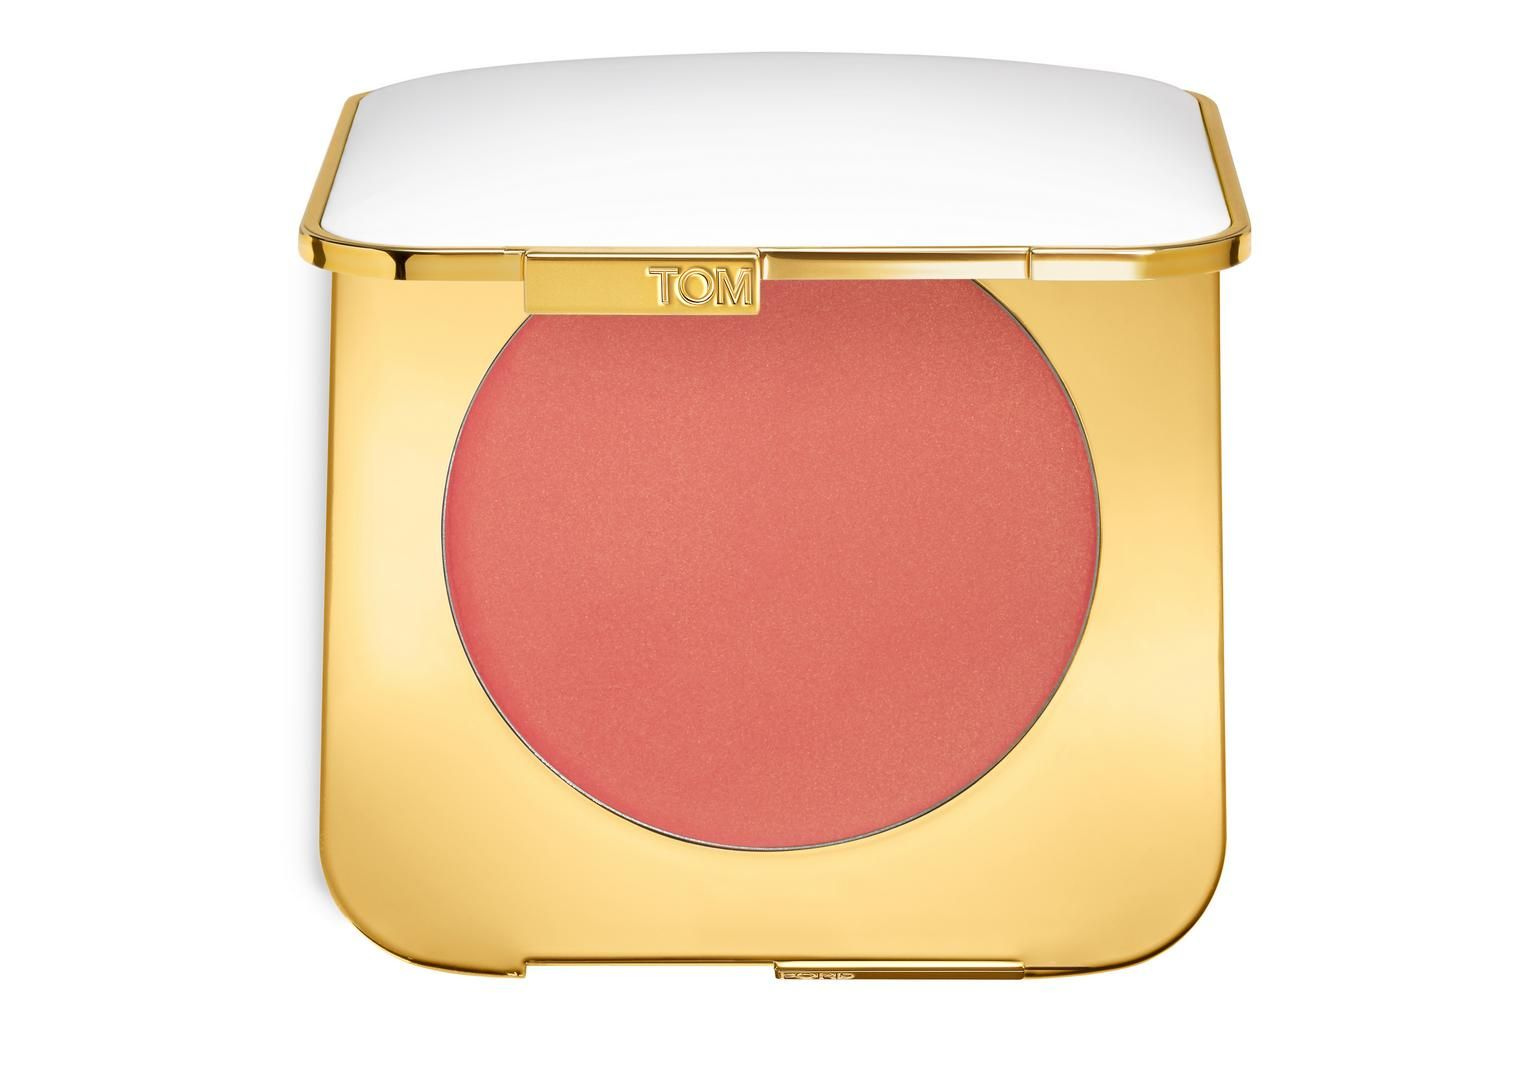 Instantly brightens face with a healthy glow and natural burst of color. The pearlescent shades give cheeks gorgeous luster and a radiant finish. Packaged in an ivory- and gold-colored Tom Ford Soleil compact.